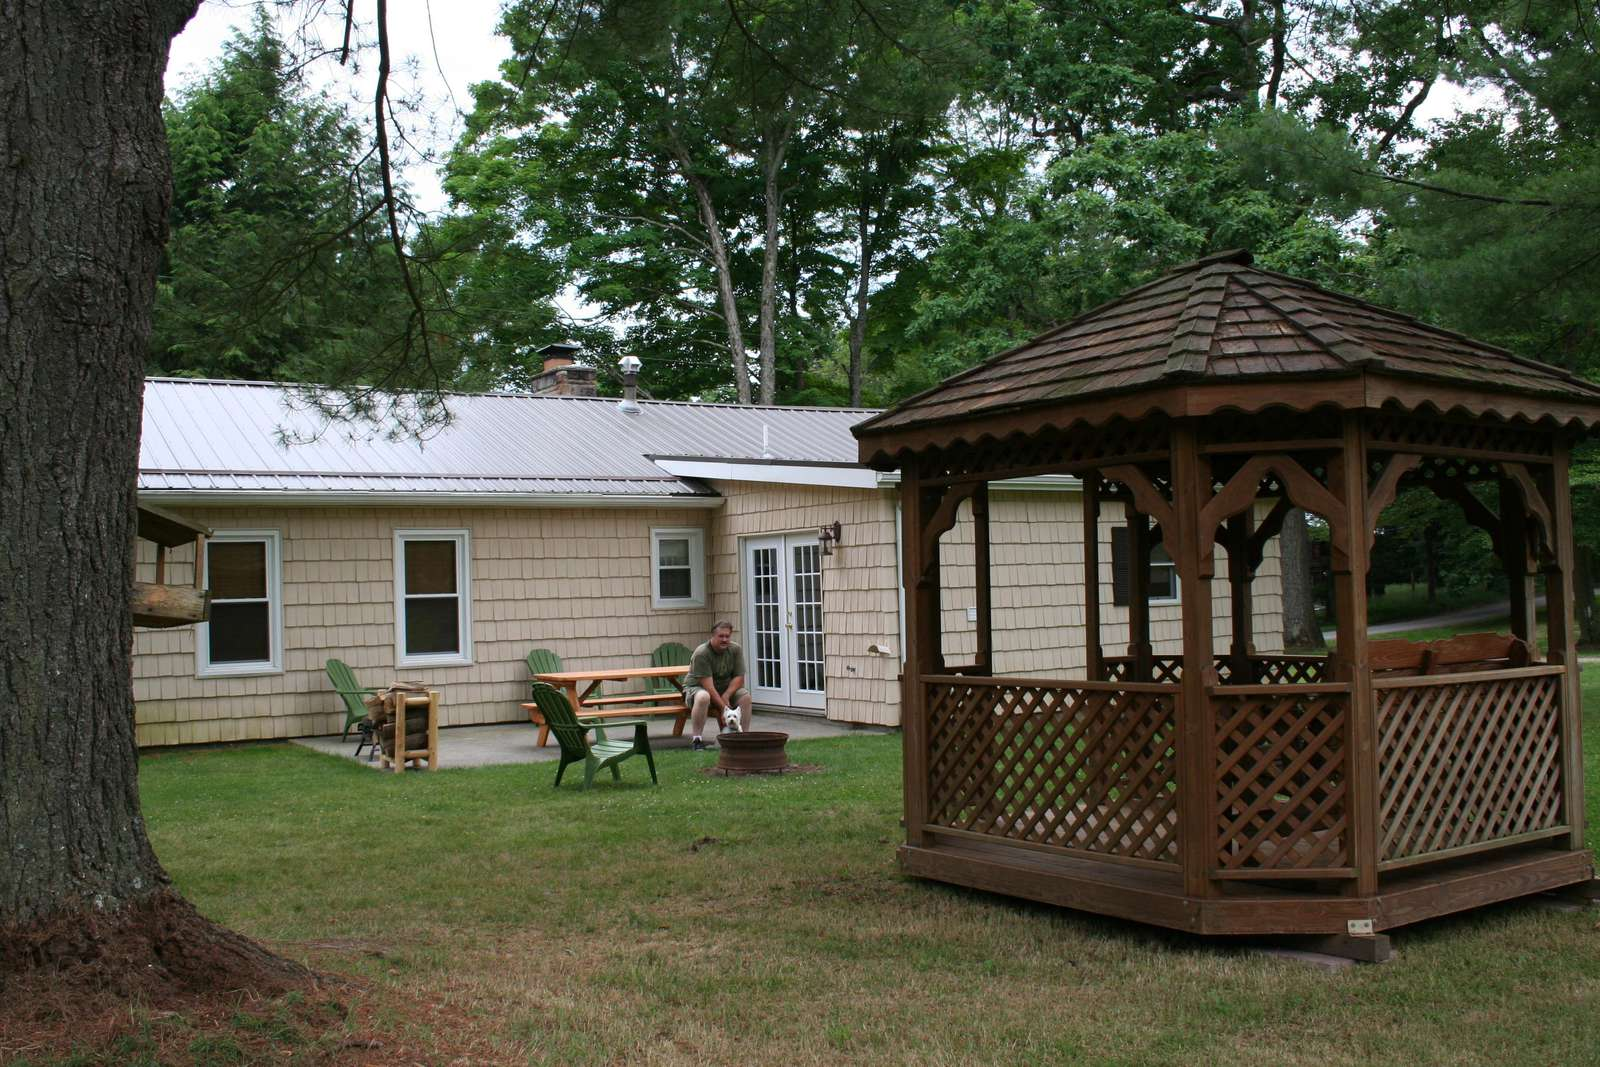 Back of cabin showing picnic area and gazebo